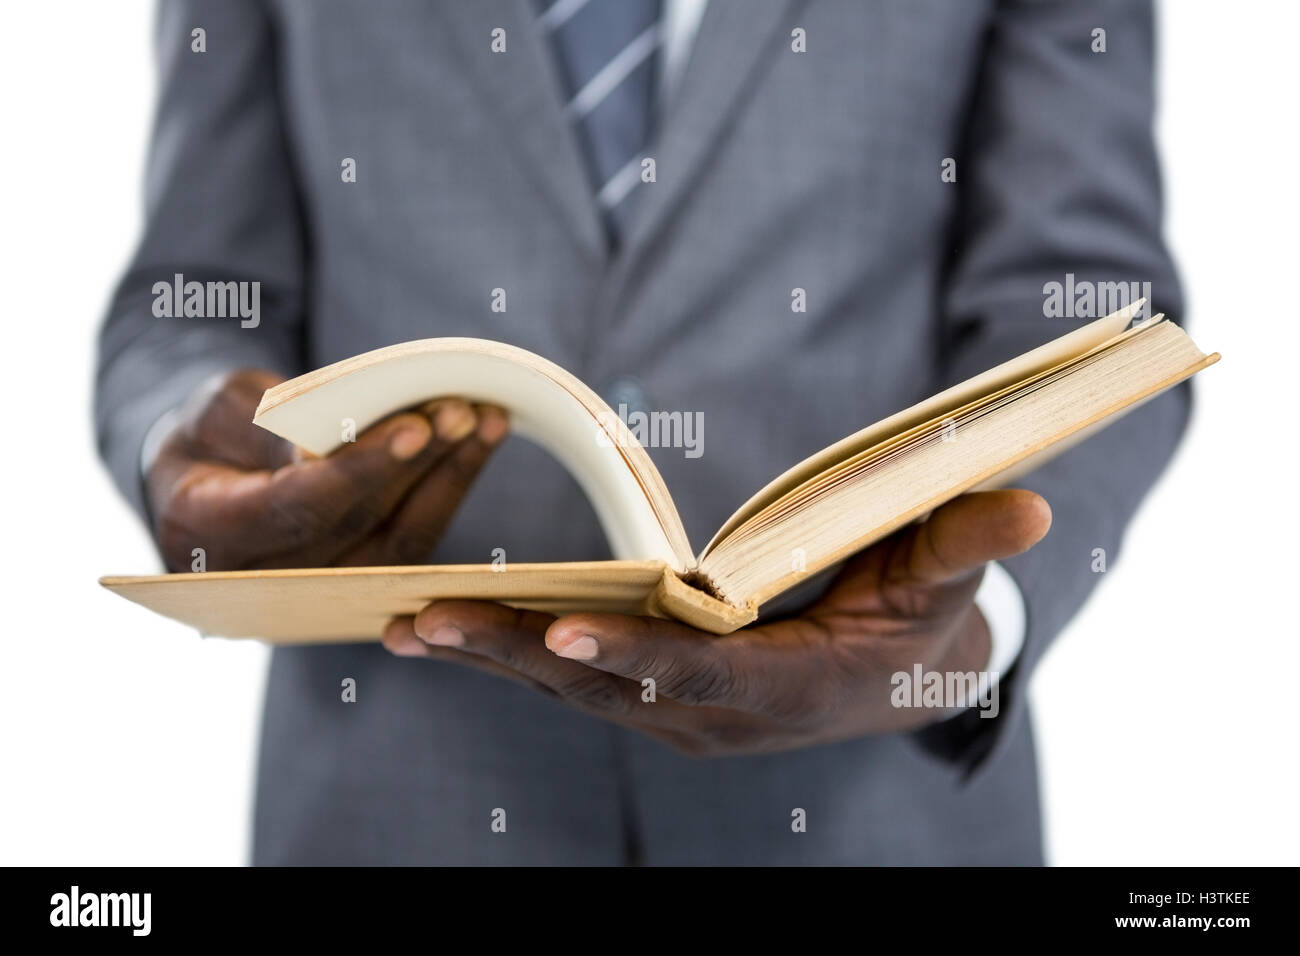 Mid section of businessman flipping the pages of a book - Stock Image